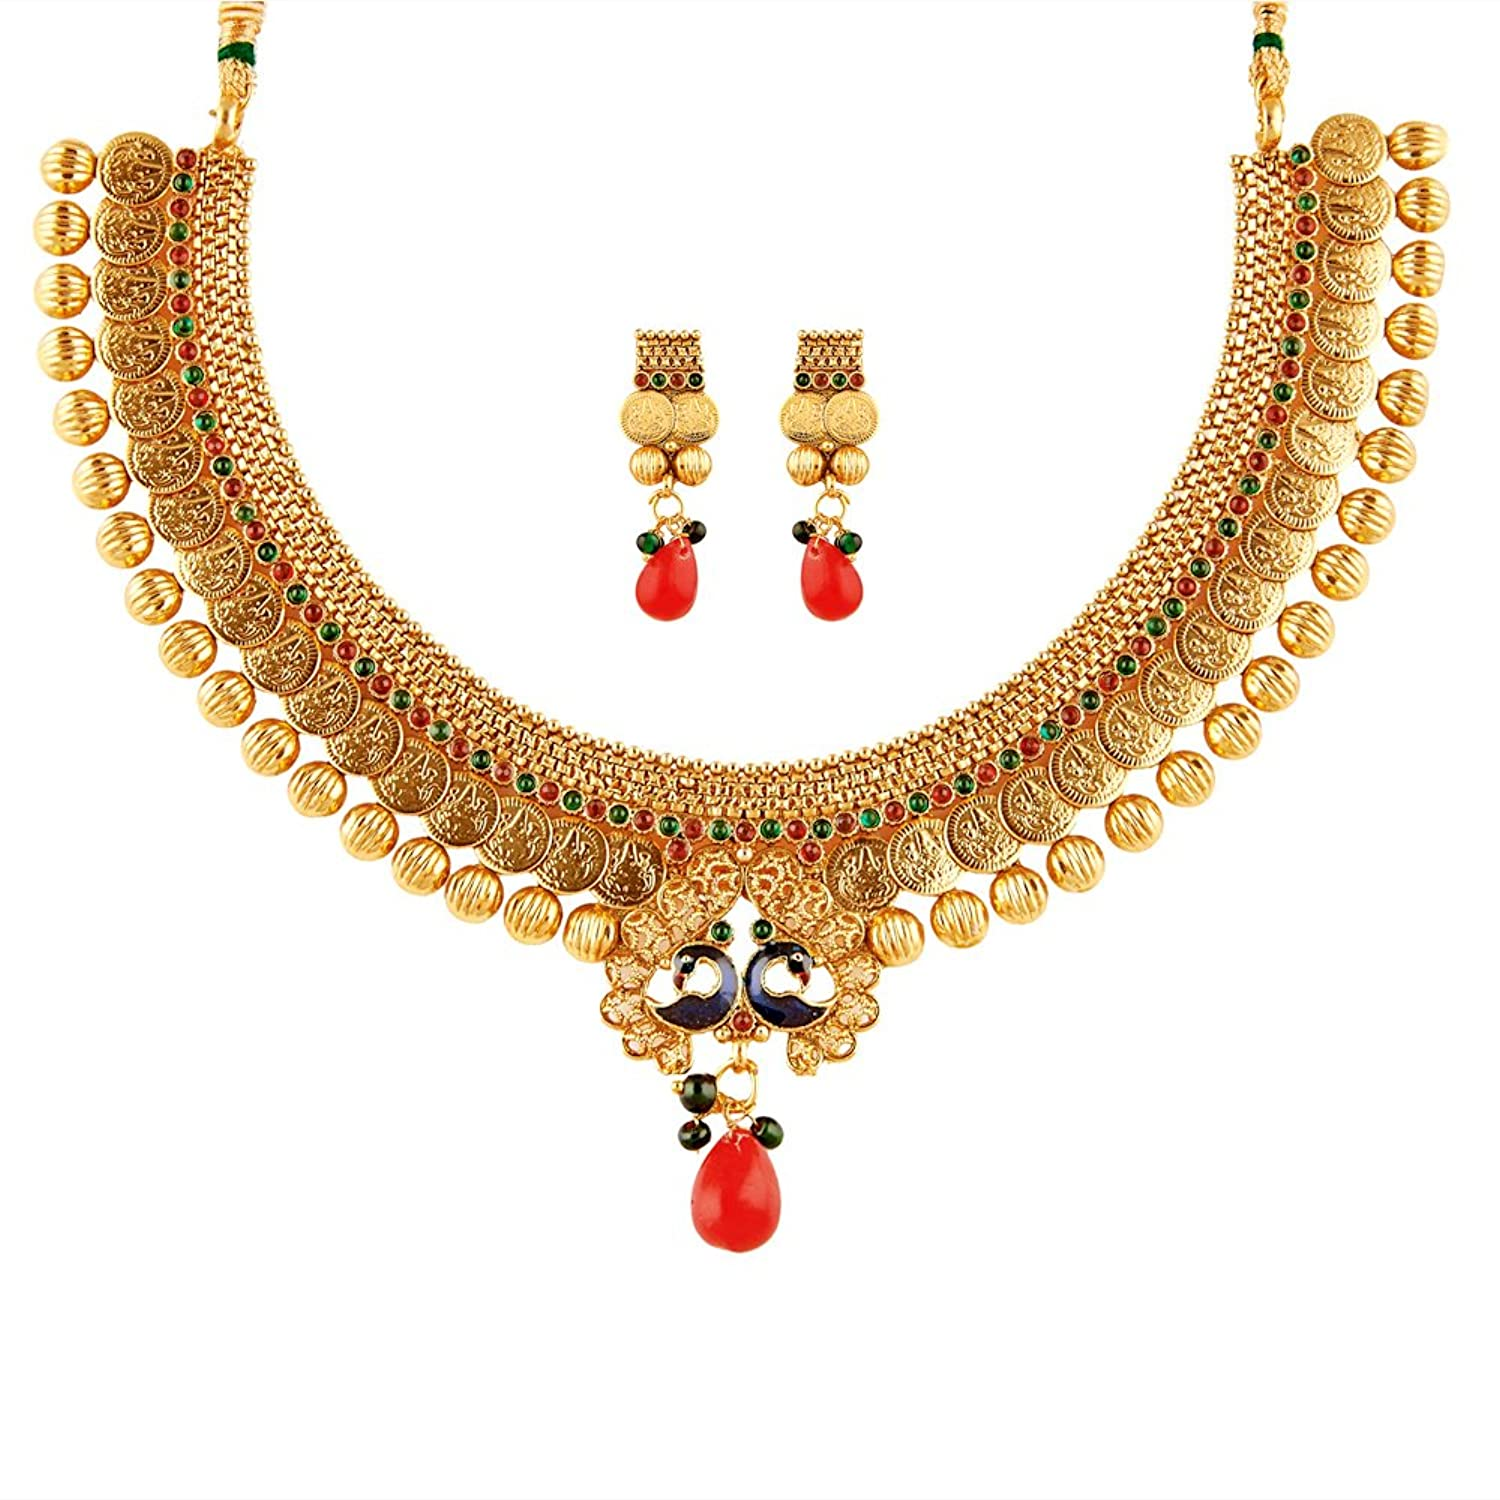 kundan jewellery by in india earrings and now at fashion passa raang online jewelry indian ruby shop pin leading gold